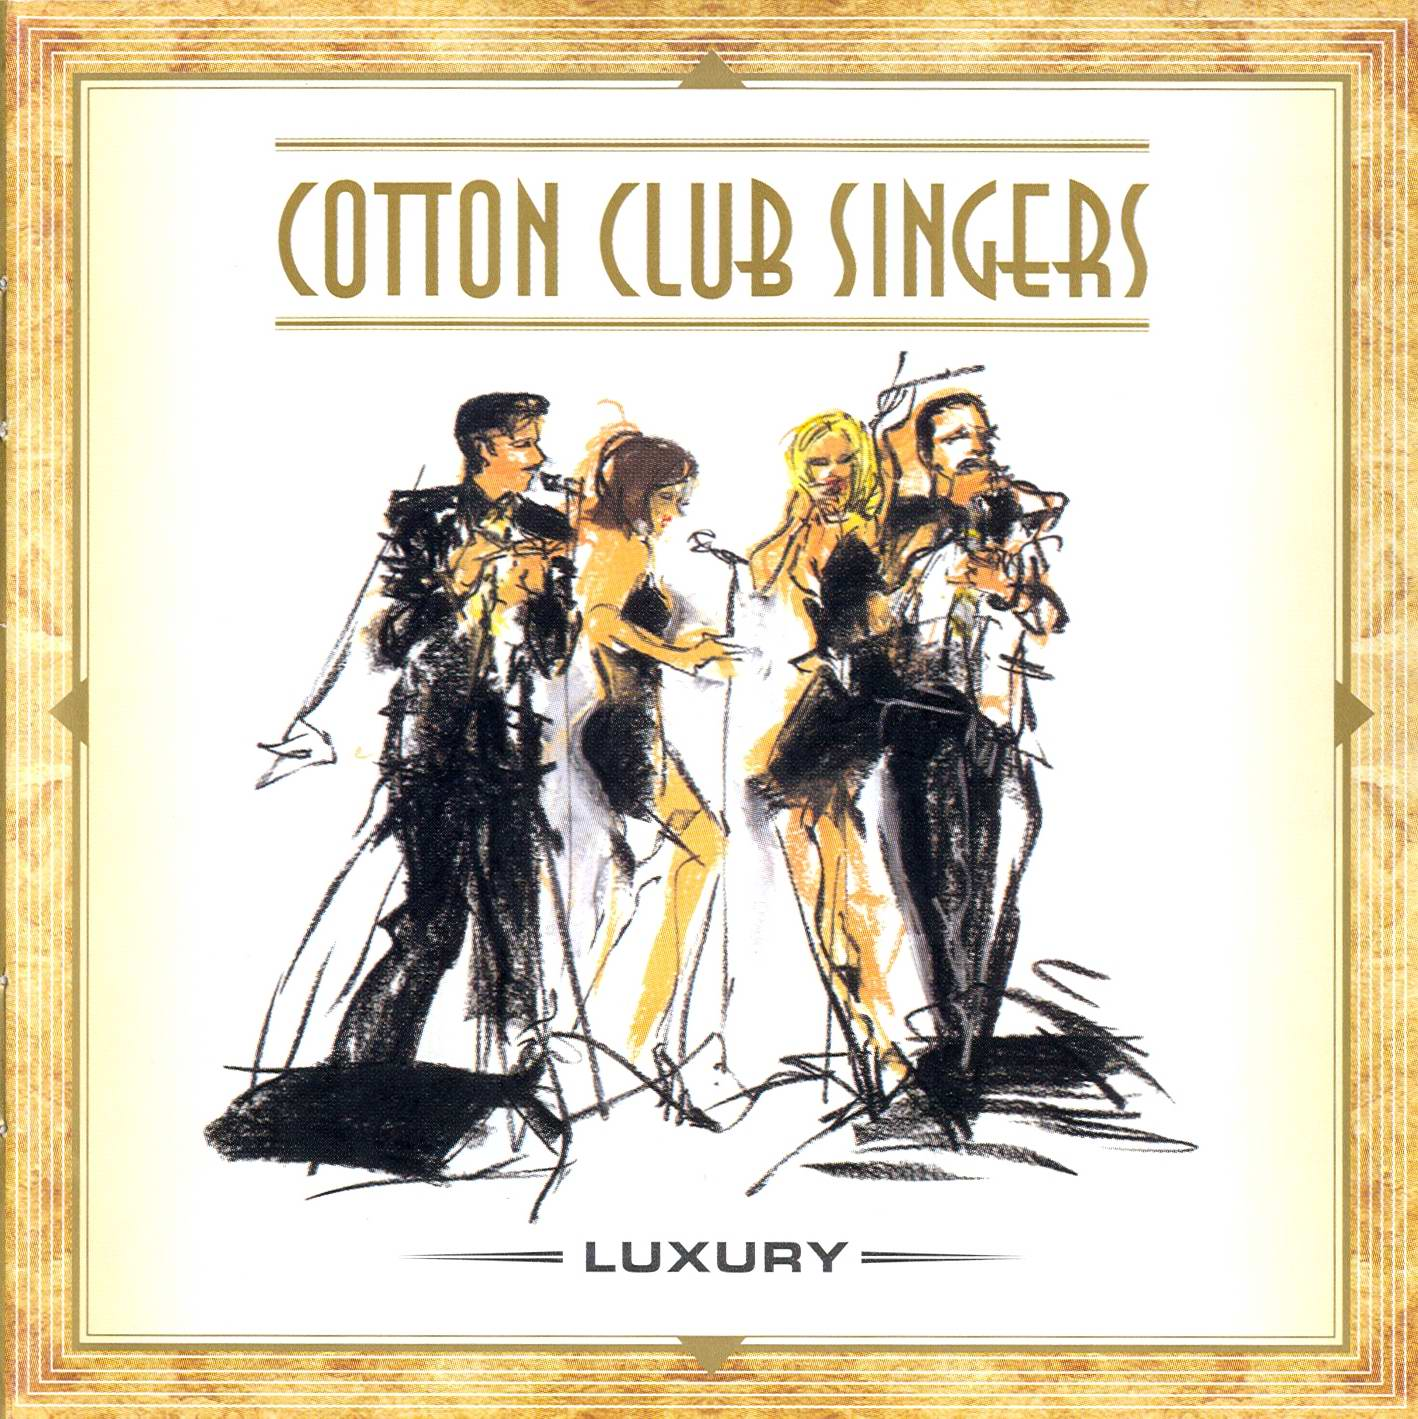 Cotton Club Singers Luxory